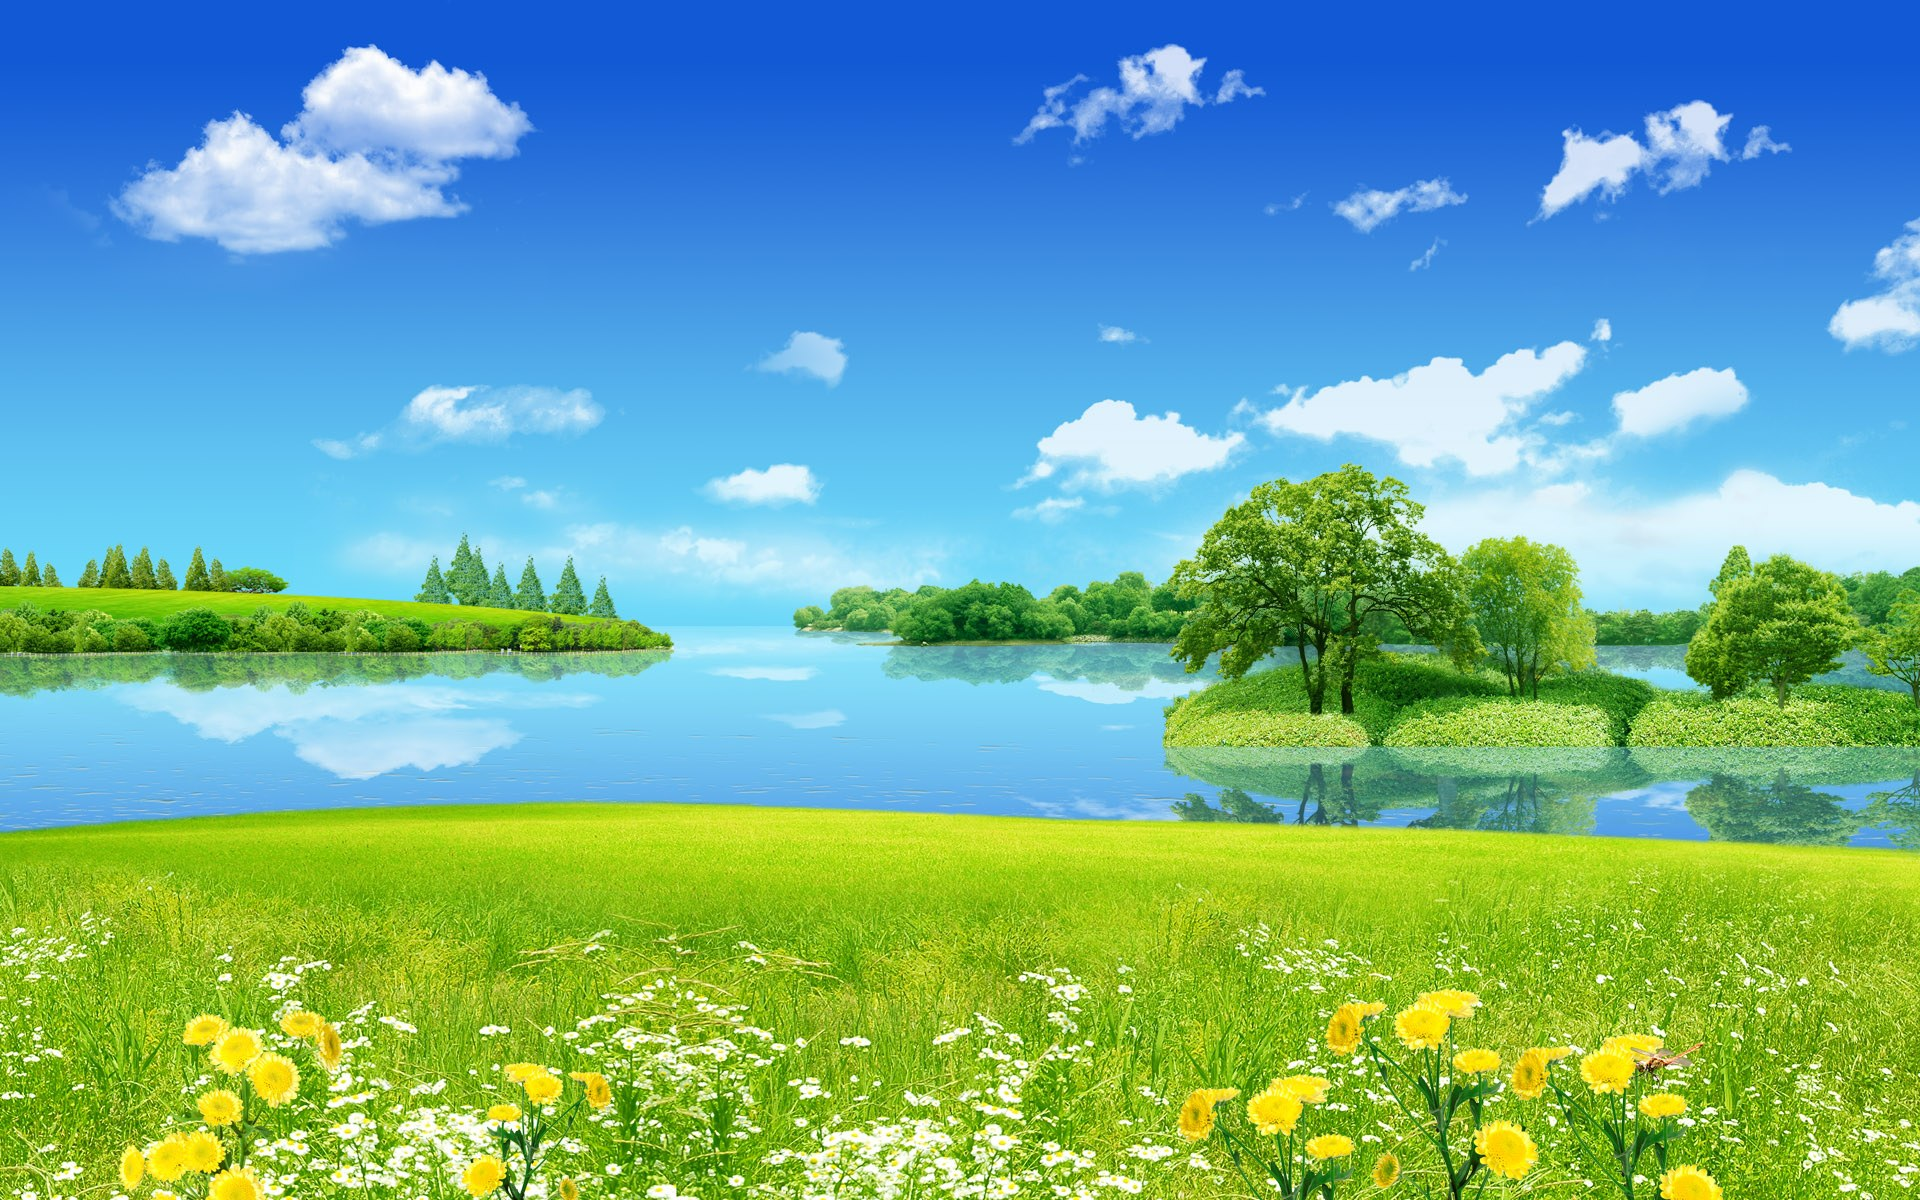 Creative Summer Dreamland Wallpapers HD Wallpapers 1920x1200